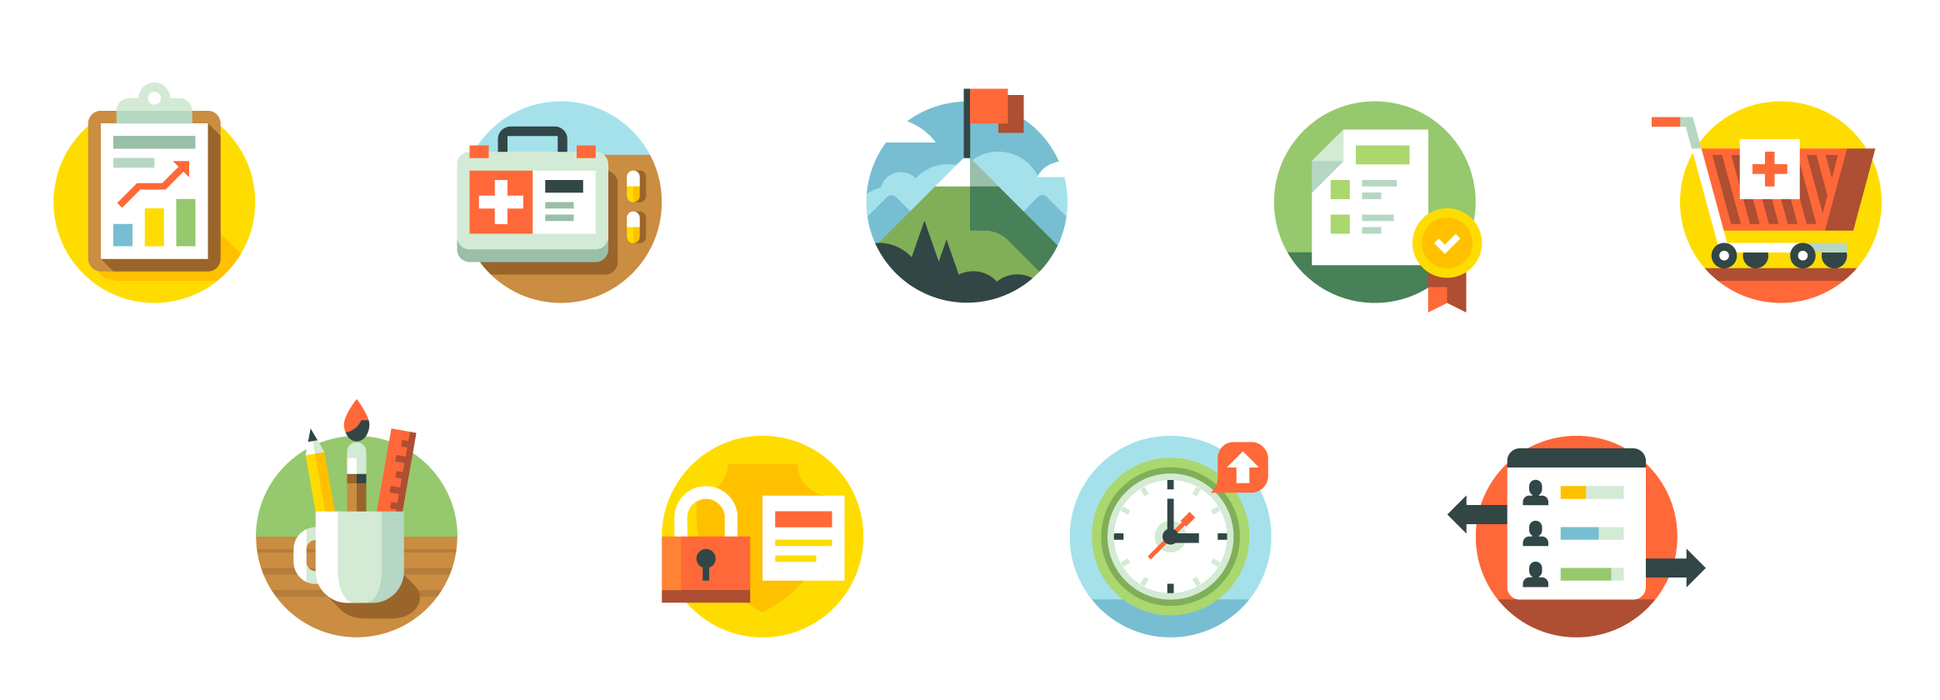 CSS Healthcare Website Illustrations by Matt Anderson - Healthcare Icons